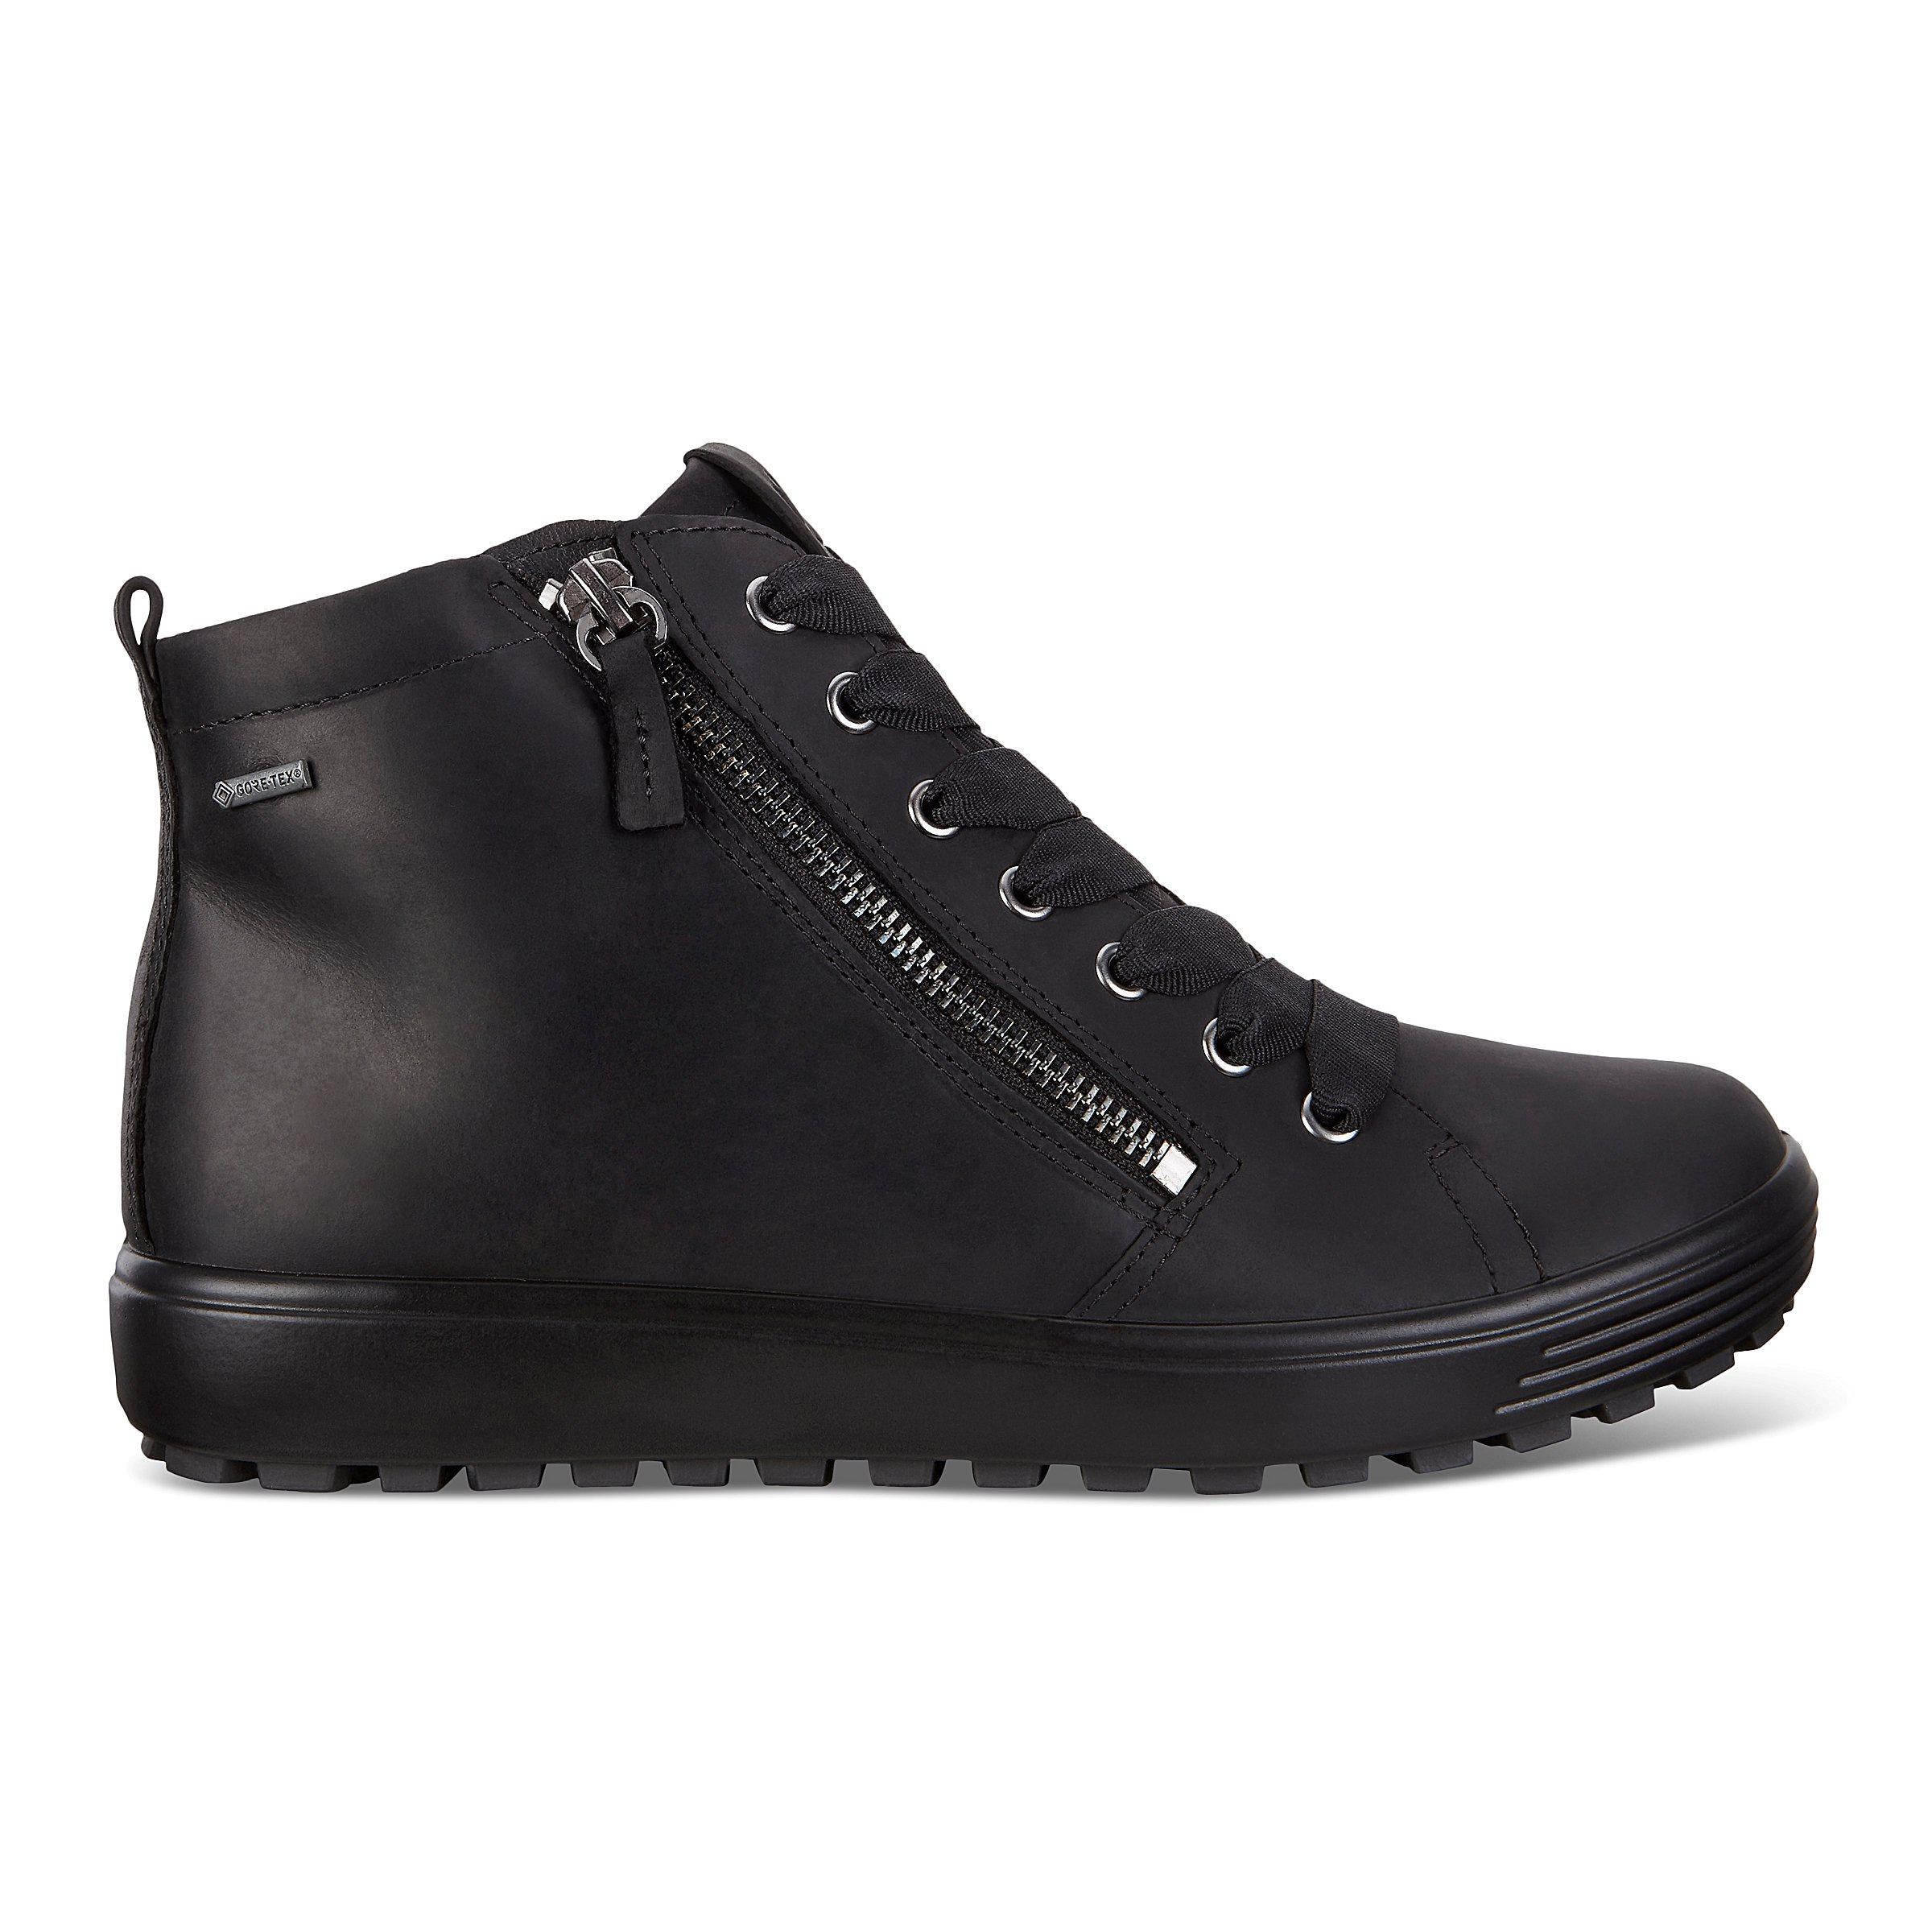 ECCO SOFT 7 TRED W | BOOTS | SHOES